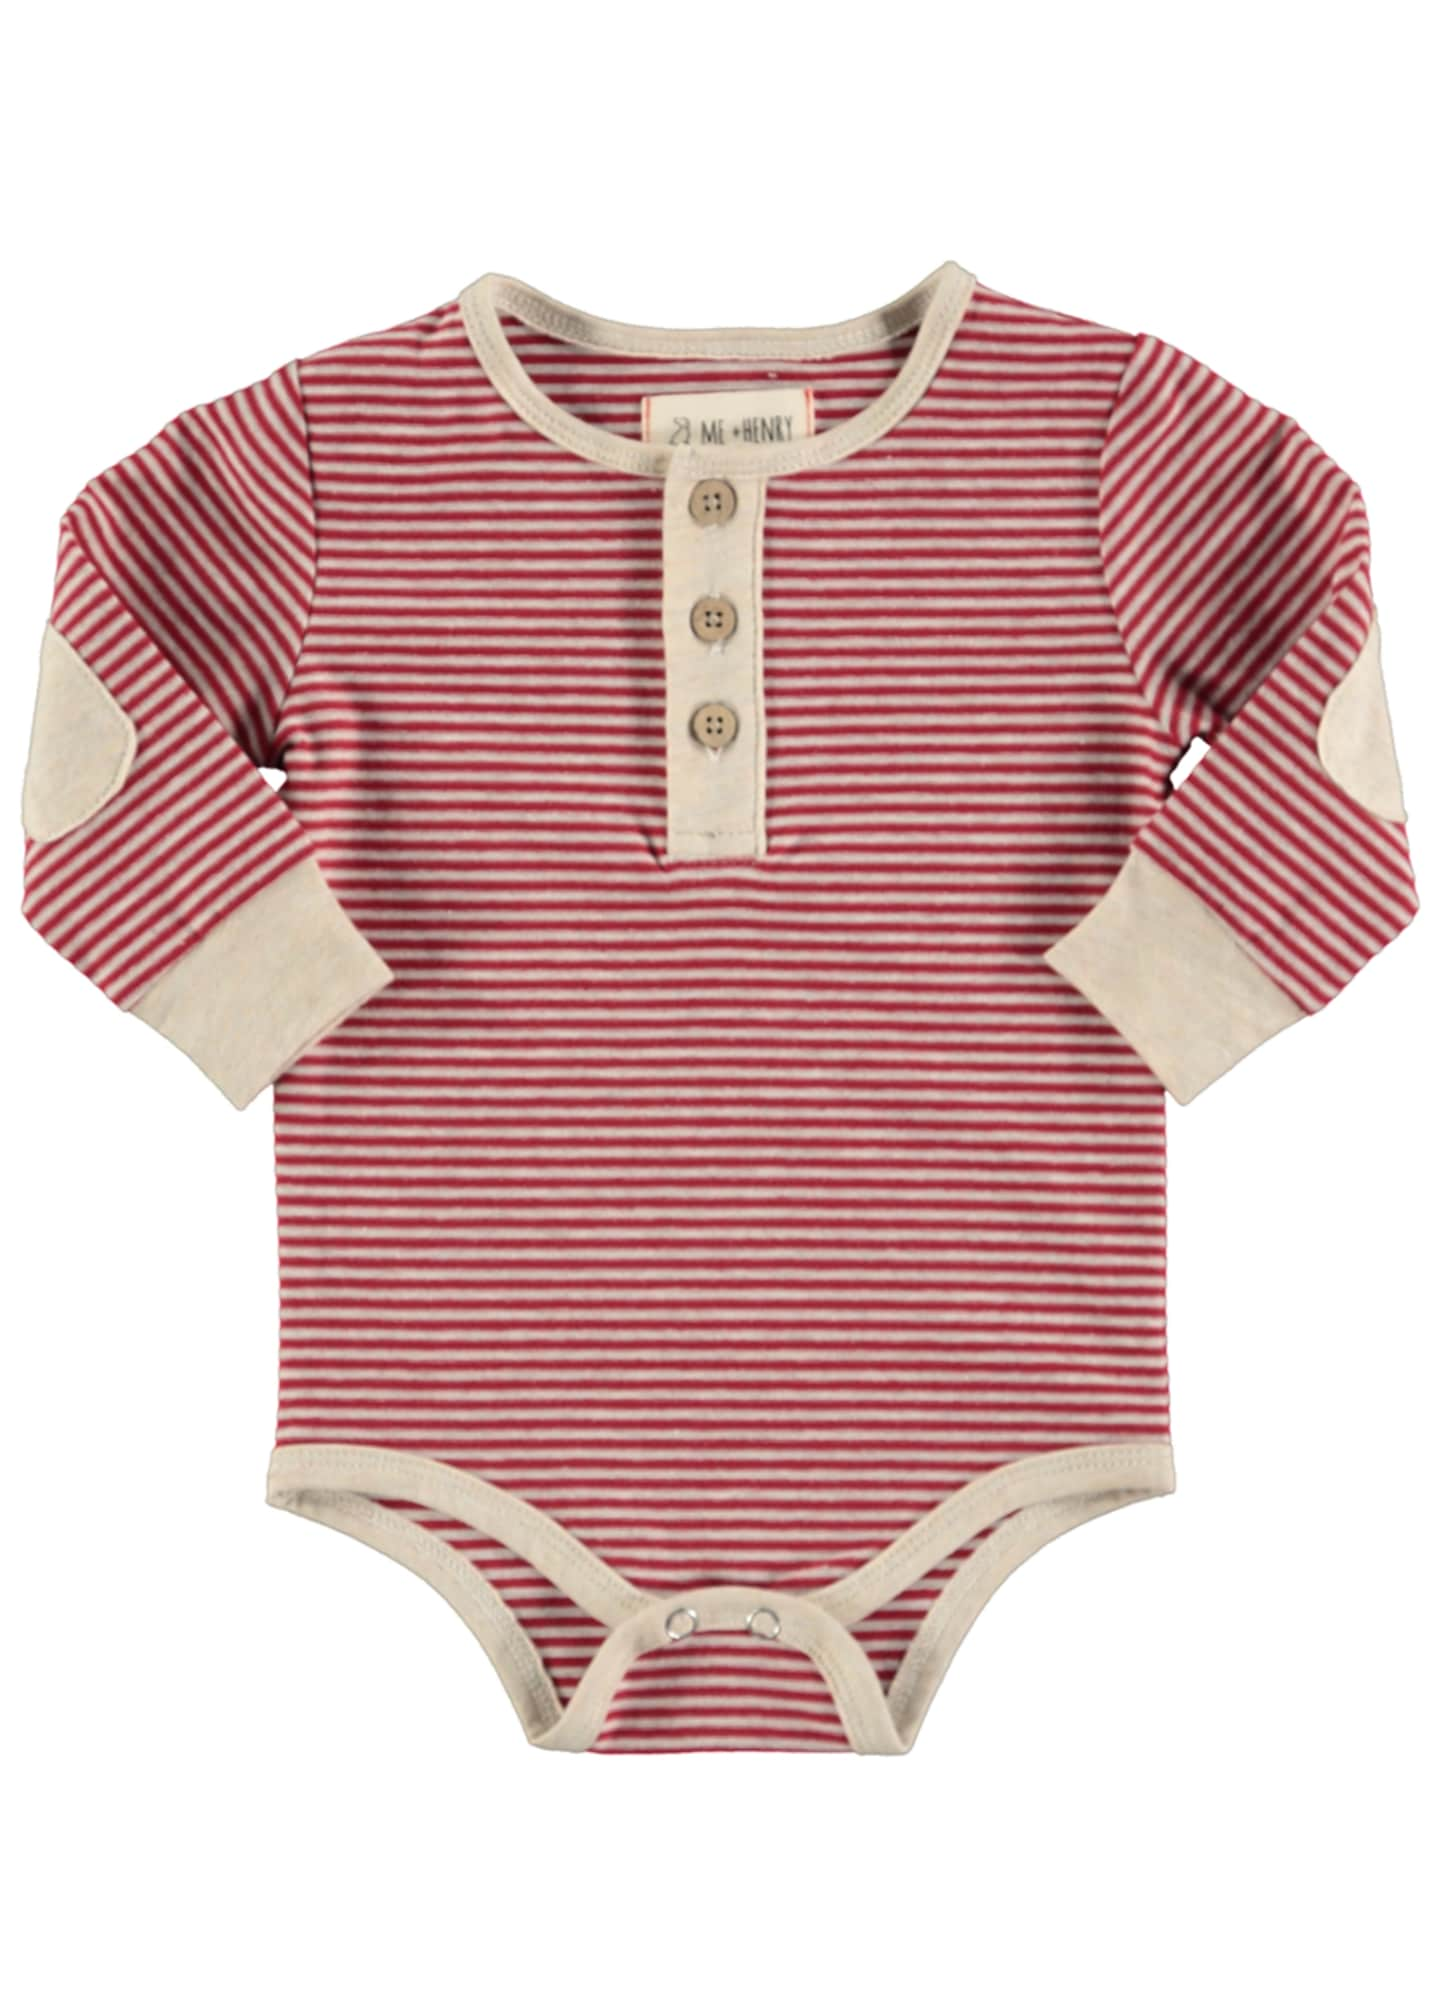 Me & Henry Striped Henley Bodysuit w/ Children's